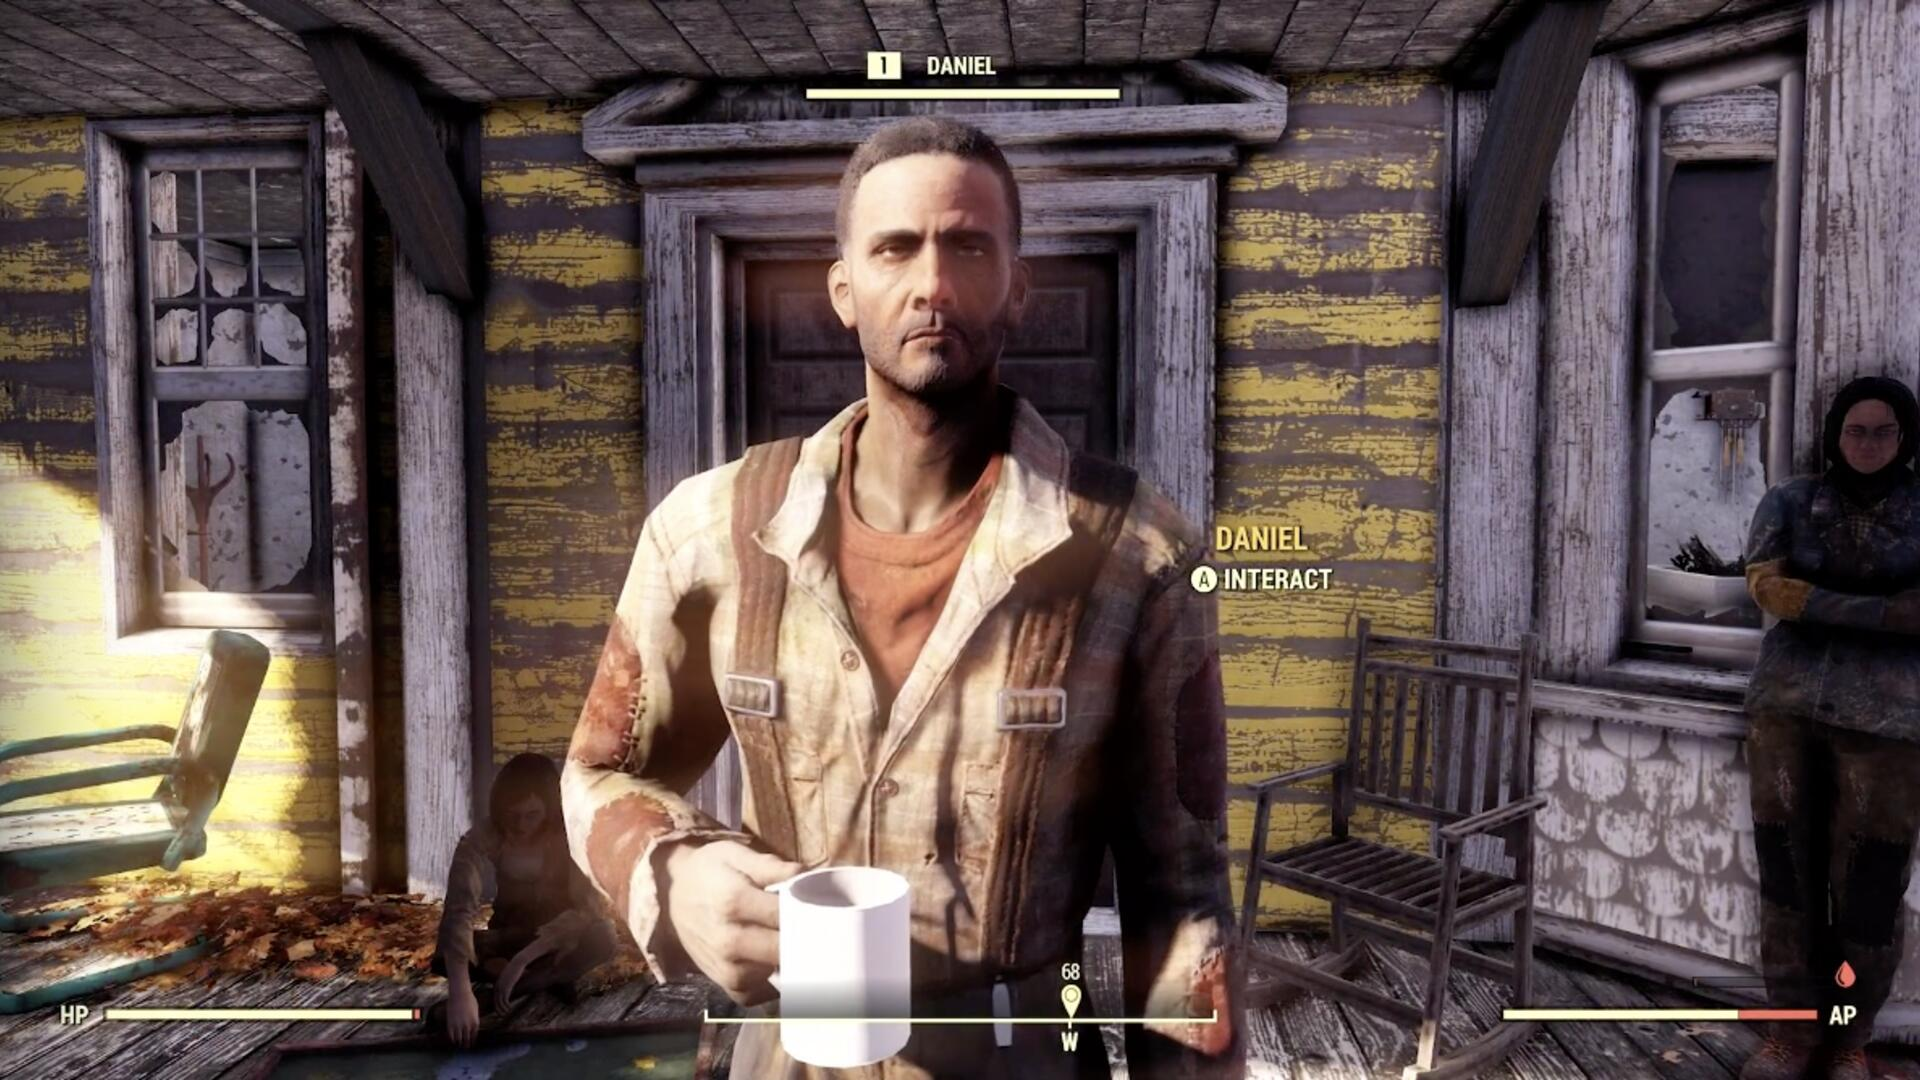 Bethesda to Make Fallout 76 Into a Fallout Game This Fall